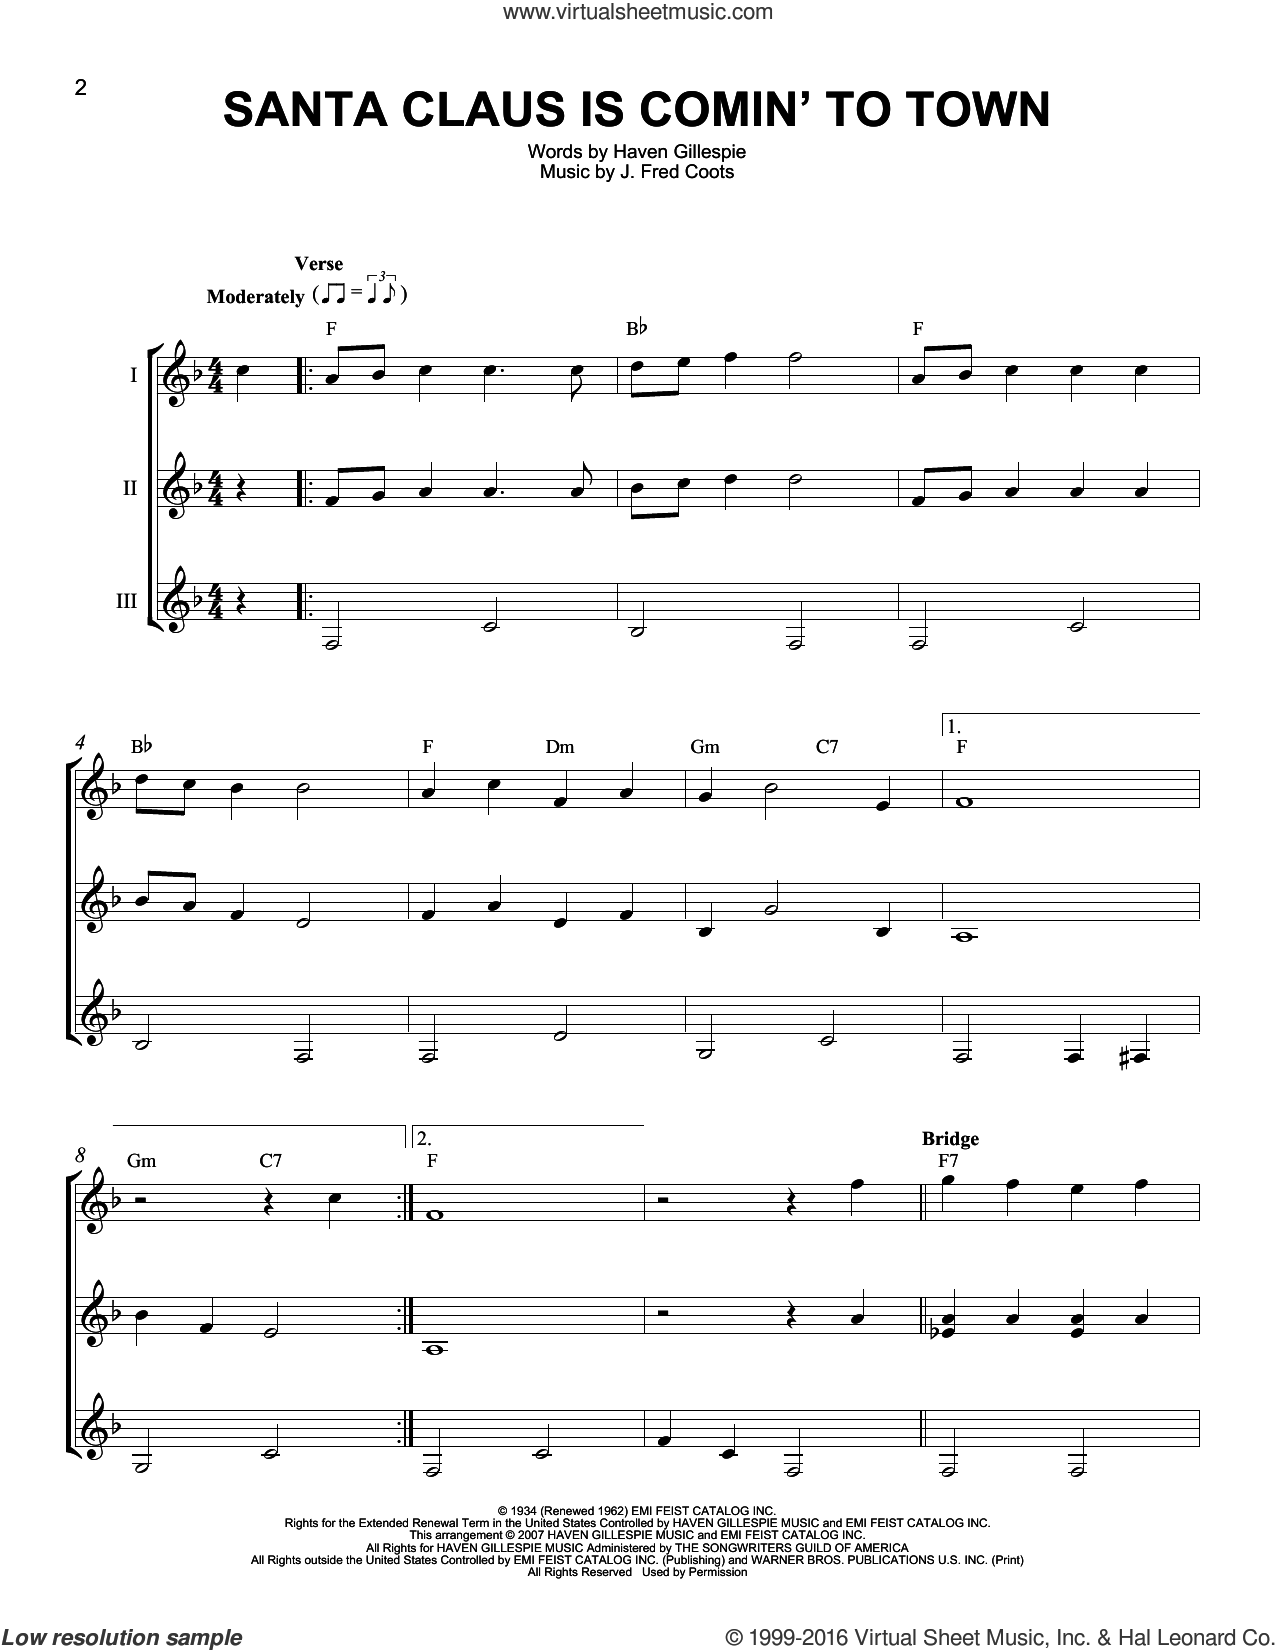 Santa Claus Is Comin' To Town sheet music for guitar ensemble by J. Fred Coots, J Arnold, Steve Tyrell and Haven Gillespie, intermediate skill level